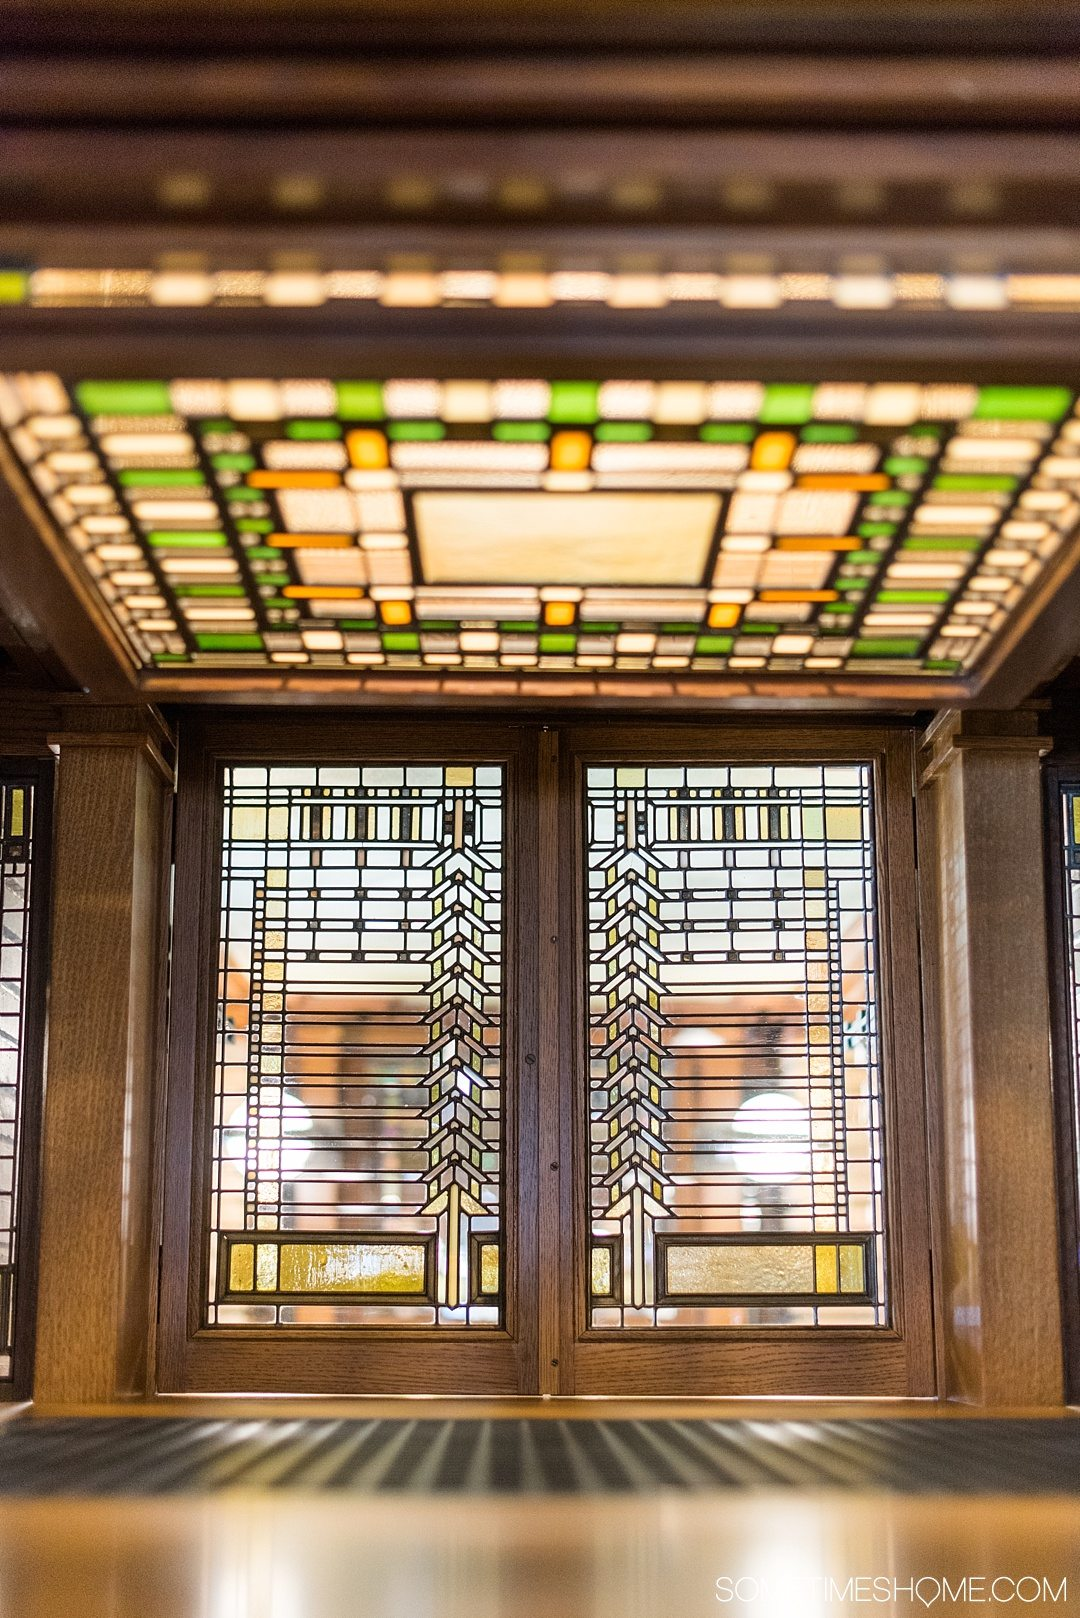 Buffalo's Darwin Martin House attraction in New York, designed by Frank Lloyd Wright. This downtown house is a wonderful place to visit whether you travel to Buffalo in winter, spring, summer or fall. It has an important place in art history and the photography of its details, including the handmade Arts and Crafts style stained glass windows - speak to that. Click through to get valuable information and insight into a visit to the home as well. #BuffaloNY #BuffaloNewYork #FrankLloydWright #ResidentialArchitecture #HistoricArchitecture #TravelBUF #VisitBuffalo #DarwinMartinHouse